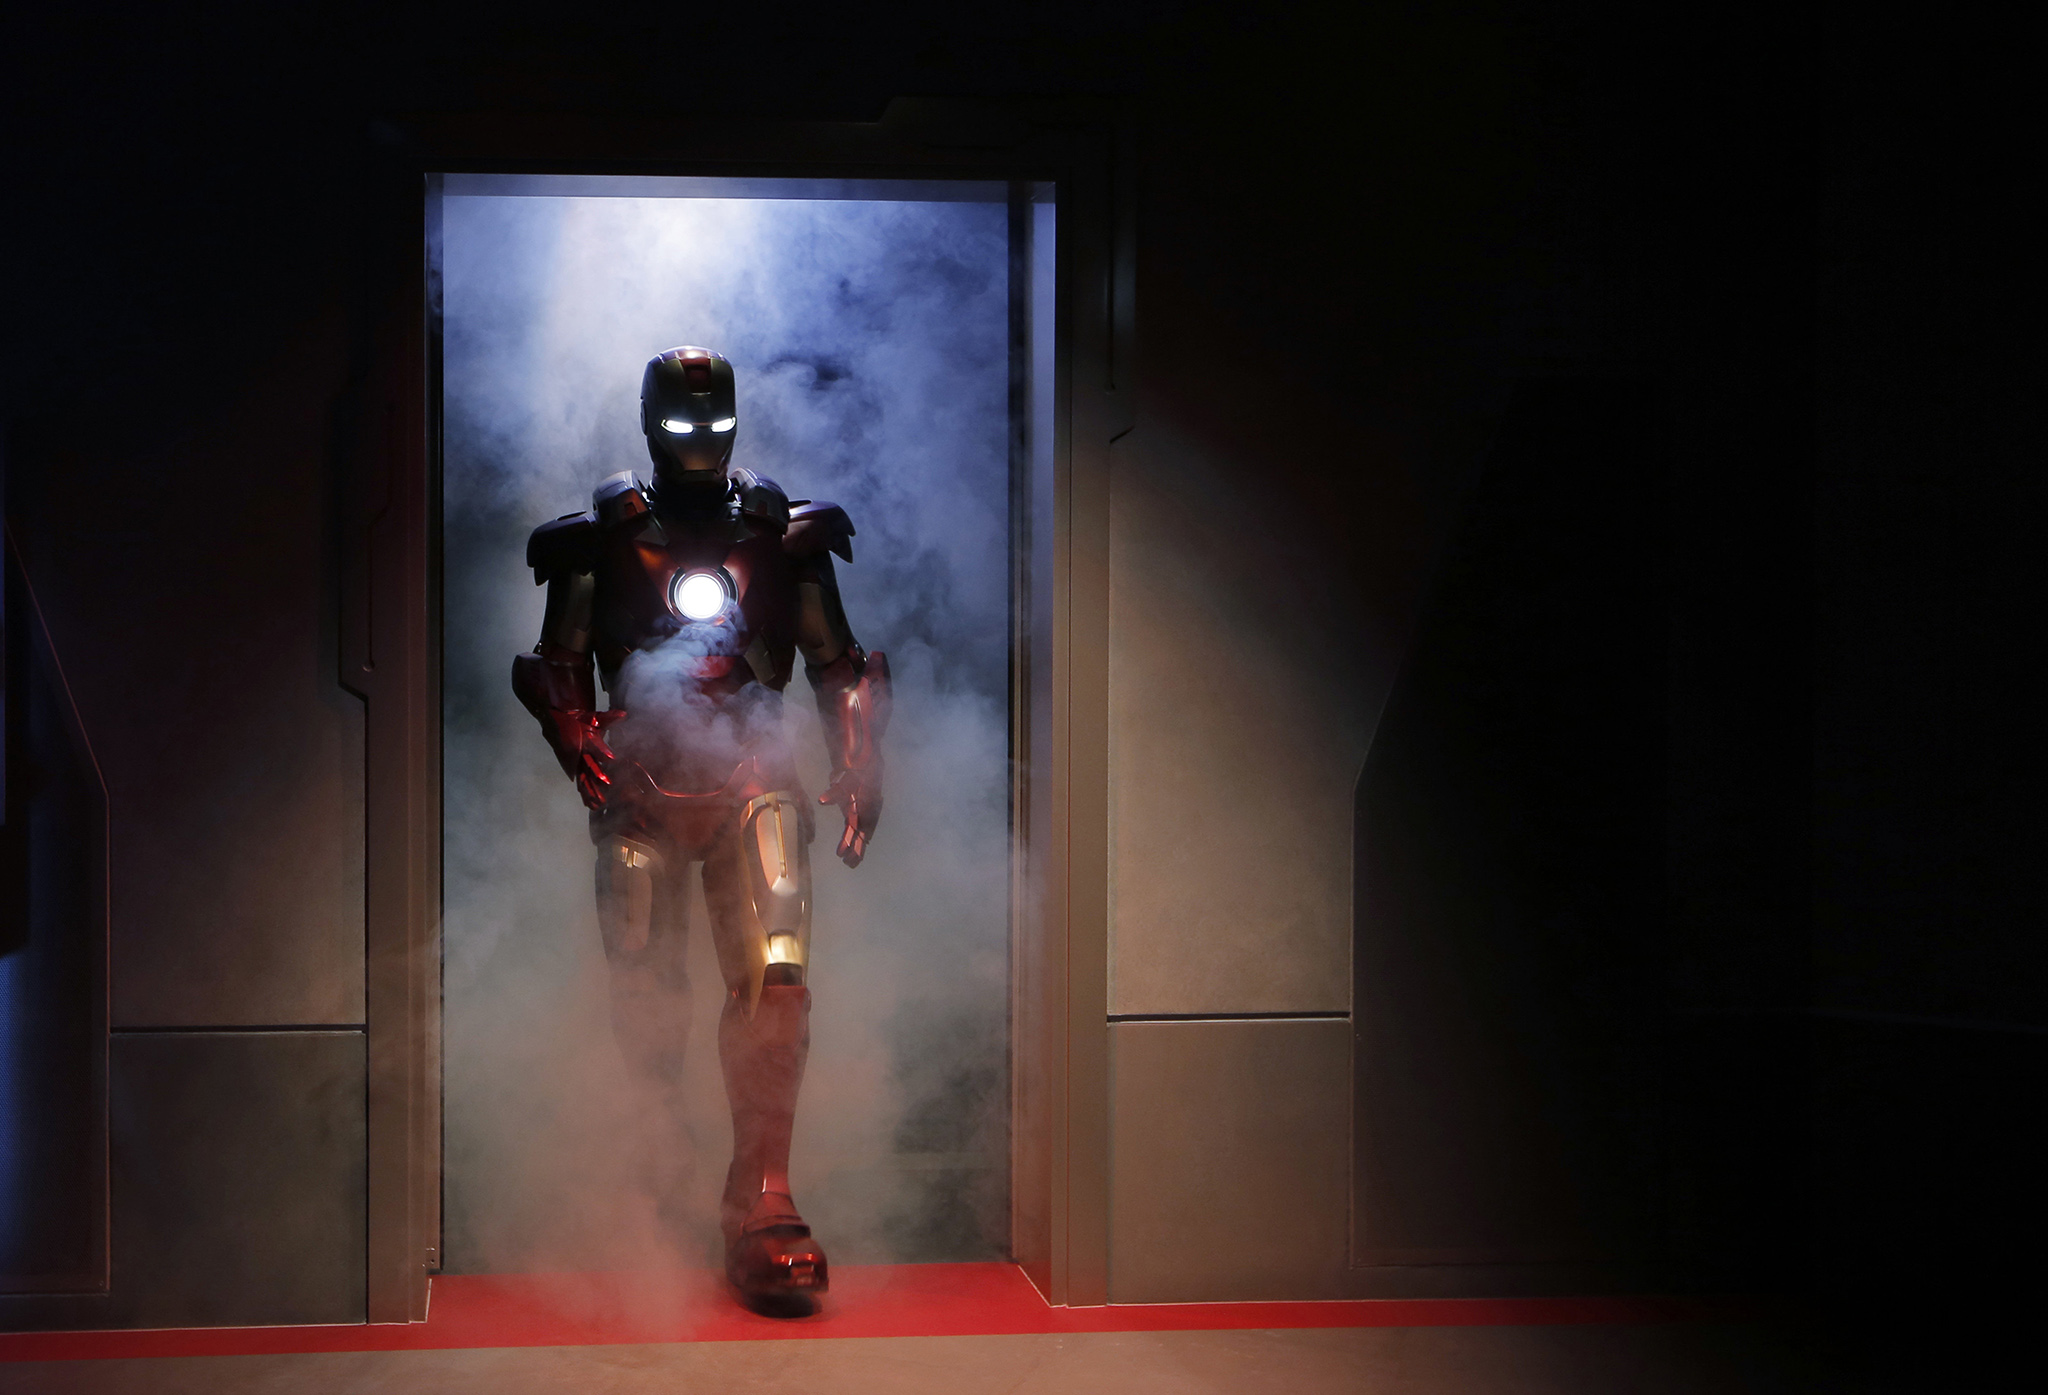 "A performer dressed as the Marvel comic character Iron Man arrives at the new attraction ""Iron Man Experience"" during a media tour in Hong Kong Disneyland, Wednesday, Dec. 14, 2016. Hong Kong Disneyland added an Iron Man-themed area in the hopes that the Marvel superhero's success at the Chinese box office will help draw more visitors to the underachieving resort. The Iron Man Experience include a thrill ride that will let visitors ""take flight with Iron Man on an epic adventure"" involving a ""battle against alien invaders"" across Hong Kong. (AP Photo/Kin Cheung)"